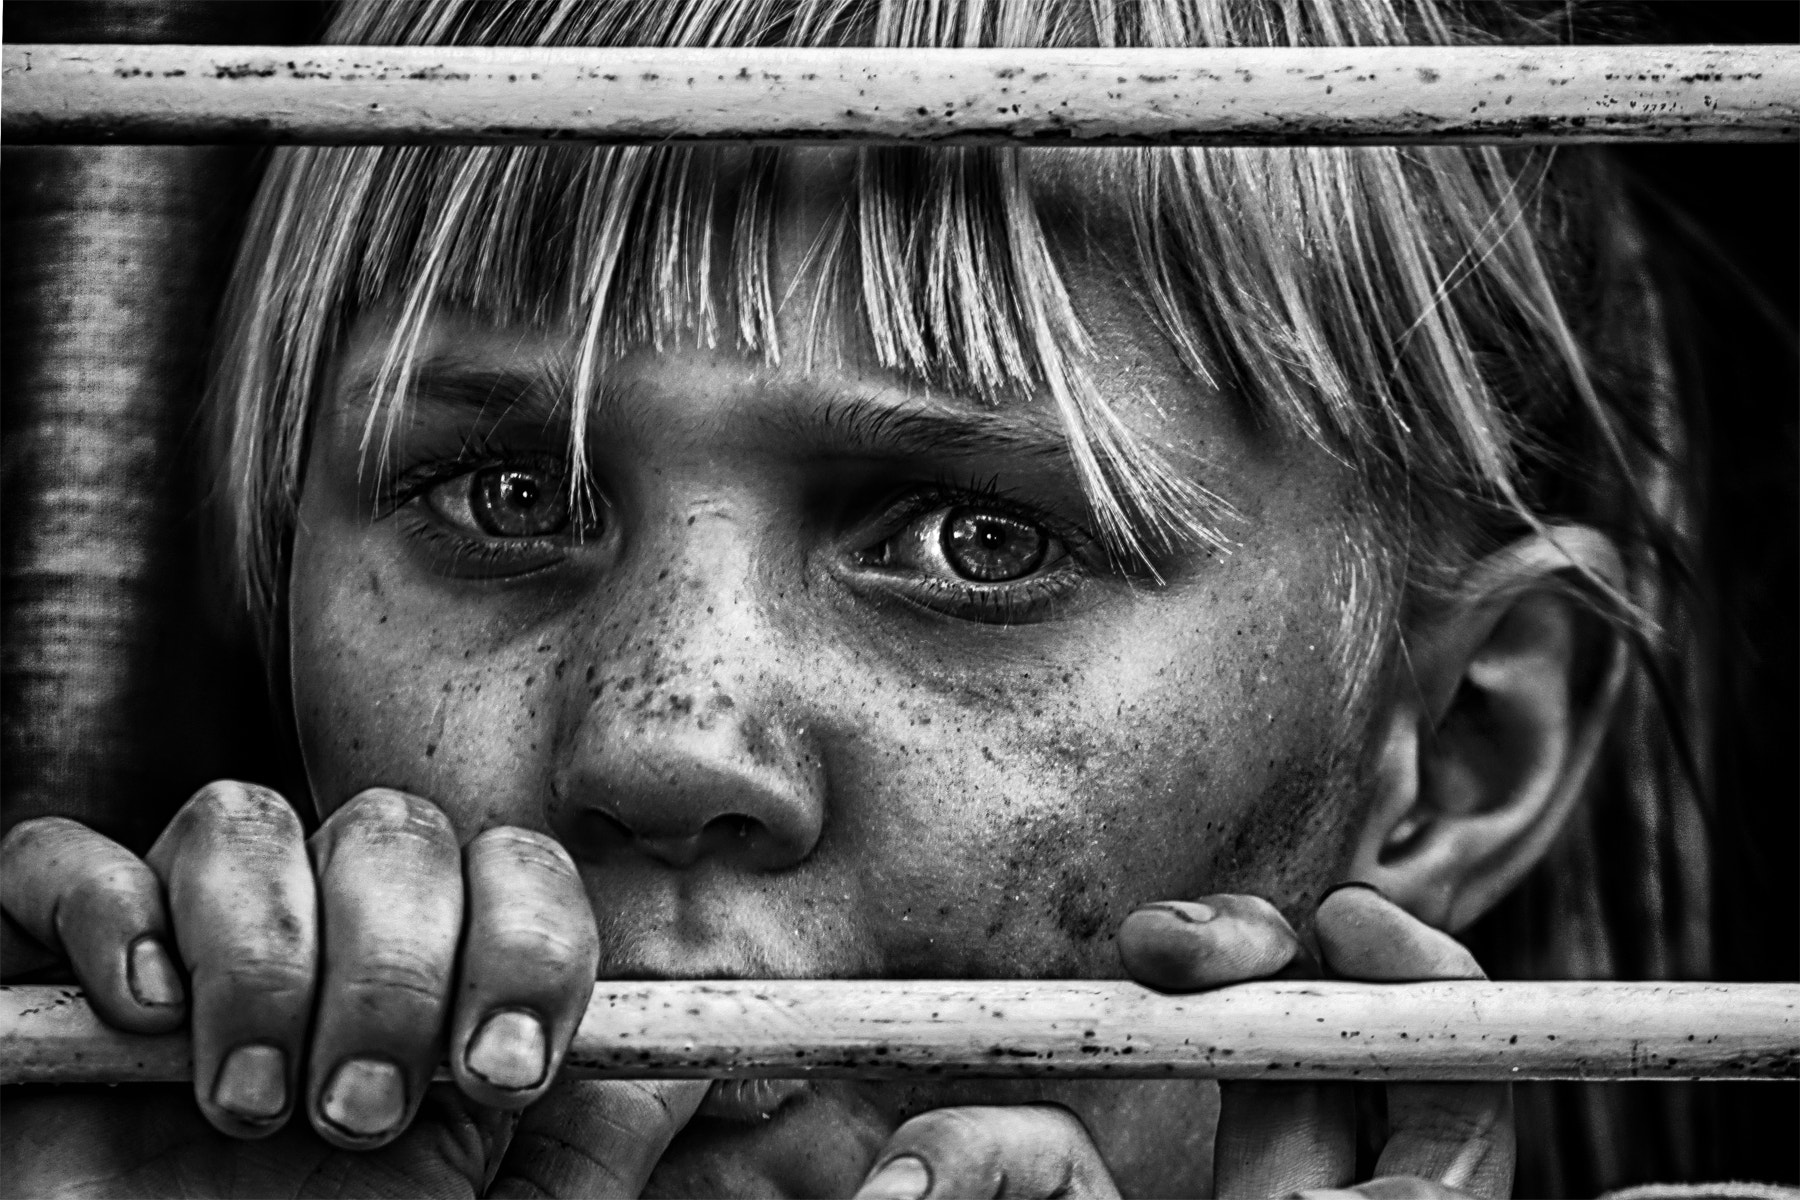 Photograph The Orphan by Pieter Oosthuysen on 500px